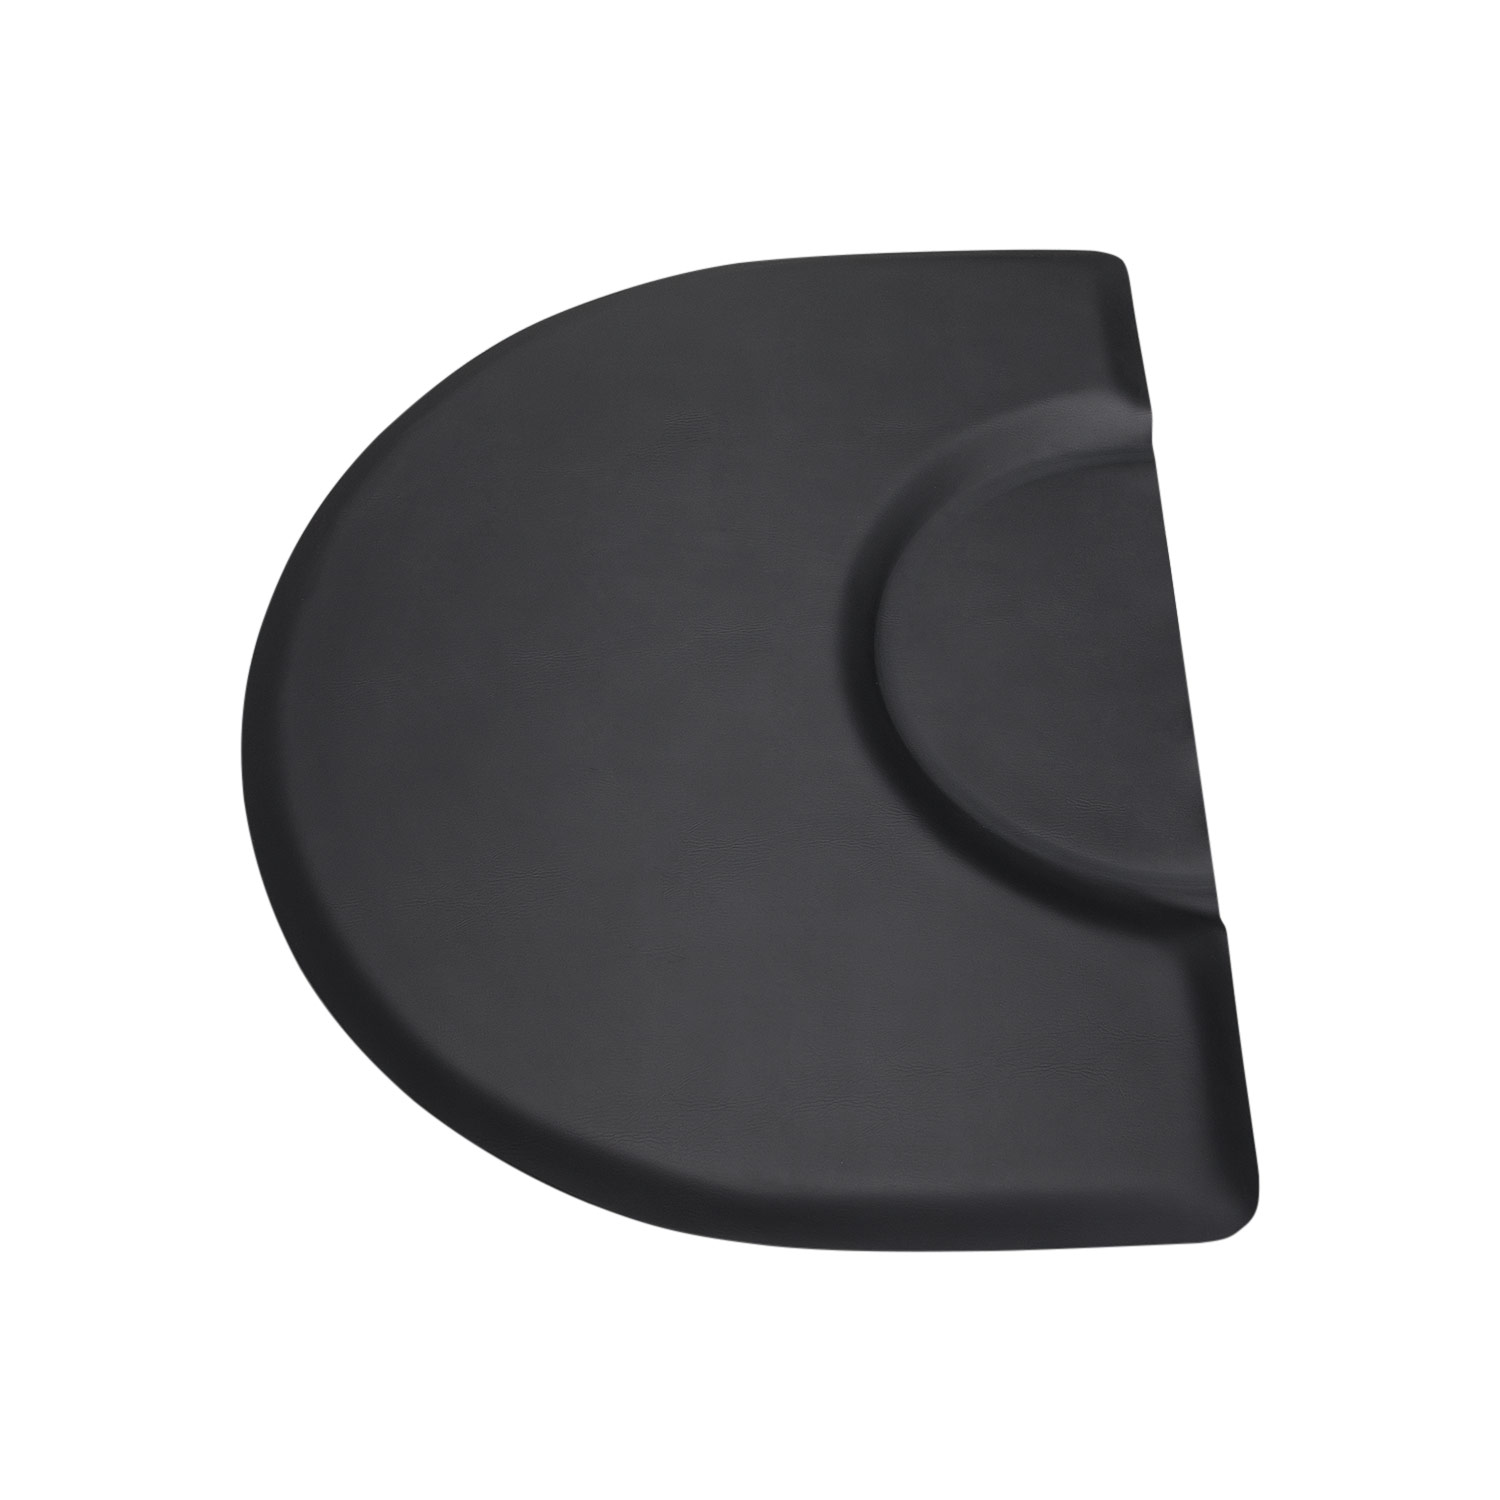 Semicircle 3x4 Anti-Fatigue Salon Floor Mat alternative product image 1